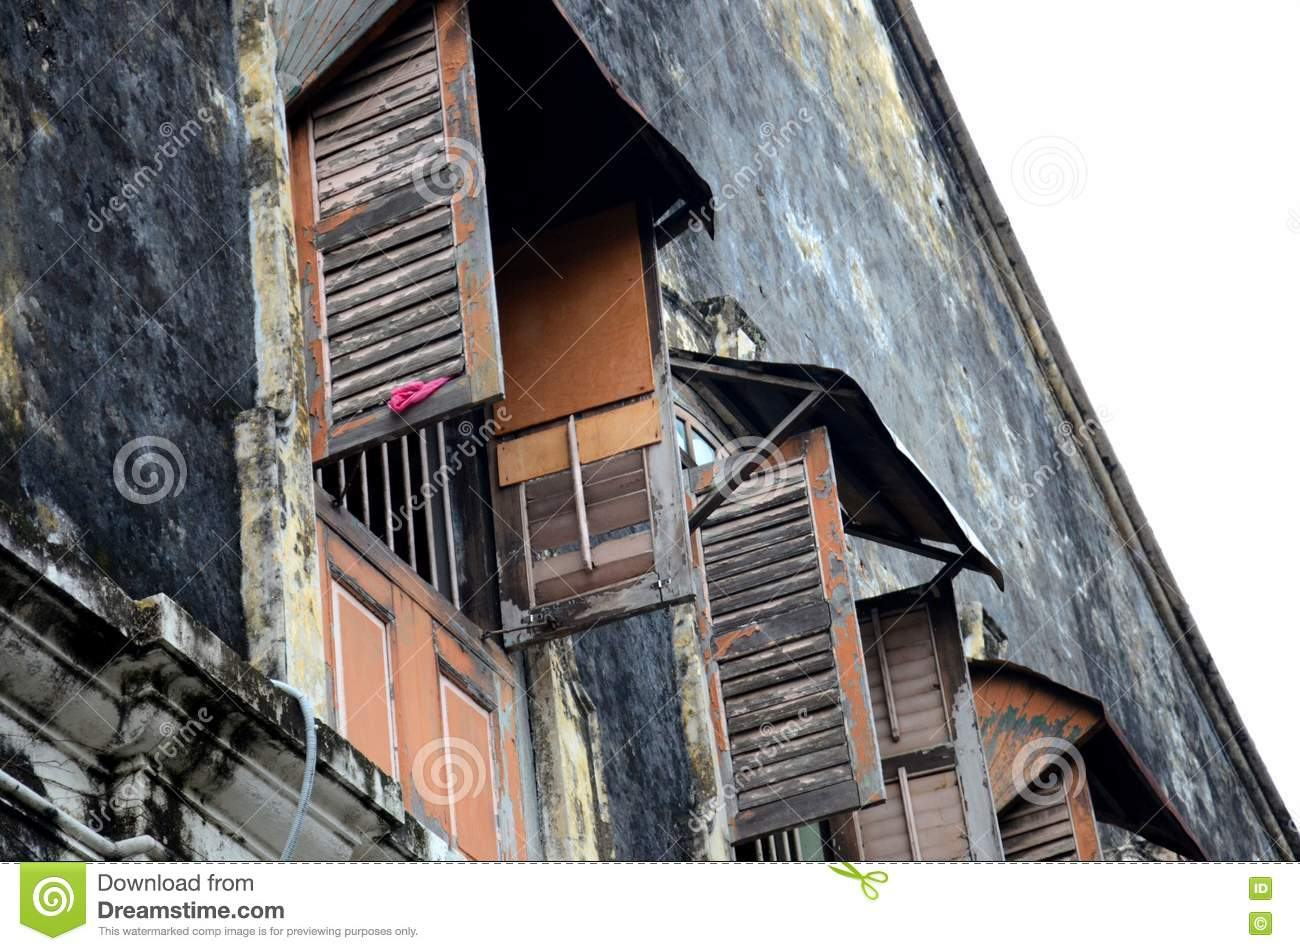 Weathered wooden shutters and windows in old building Georgetown Penang Malaysia